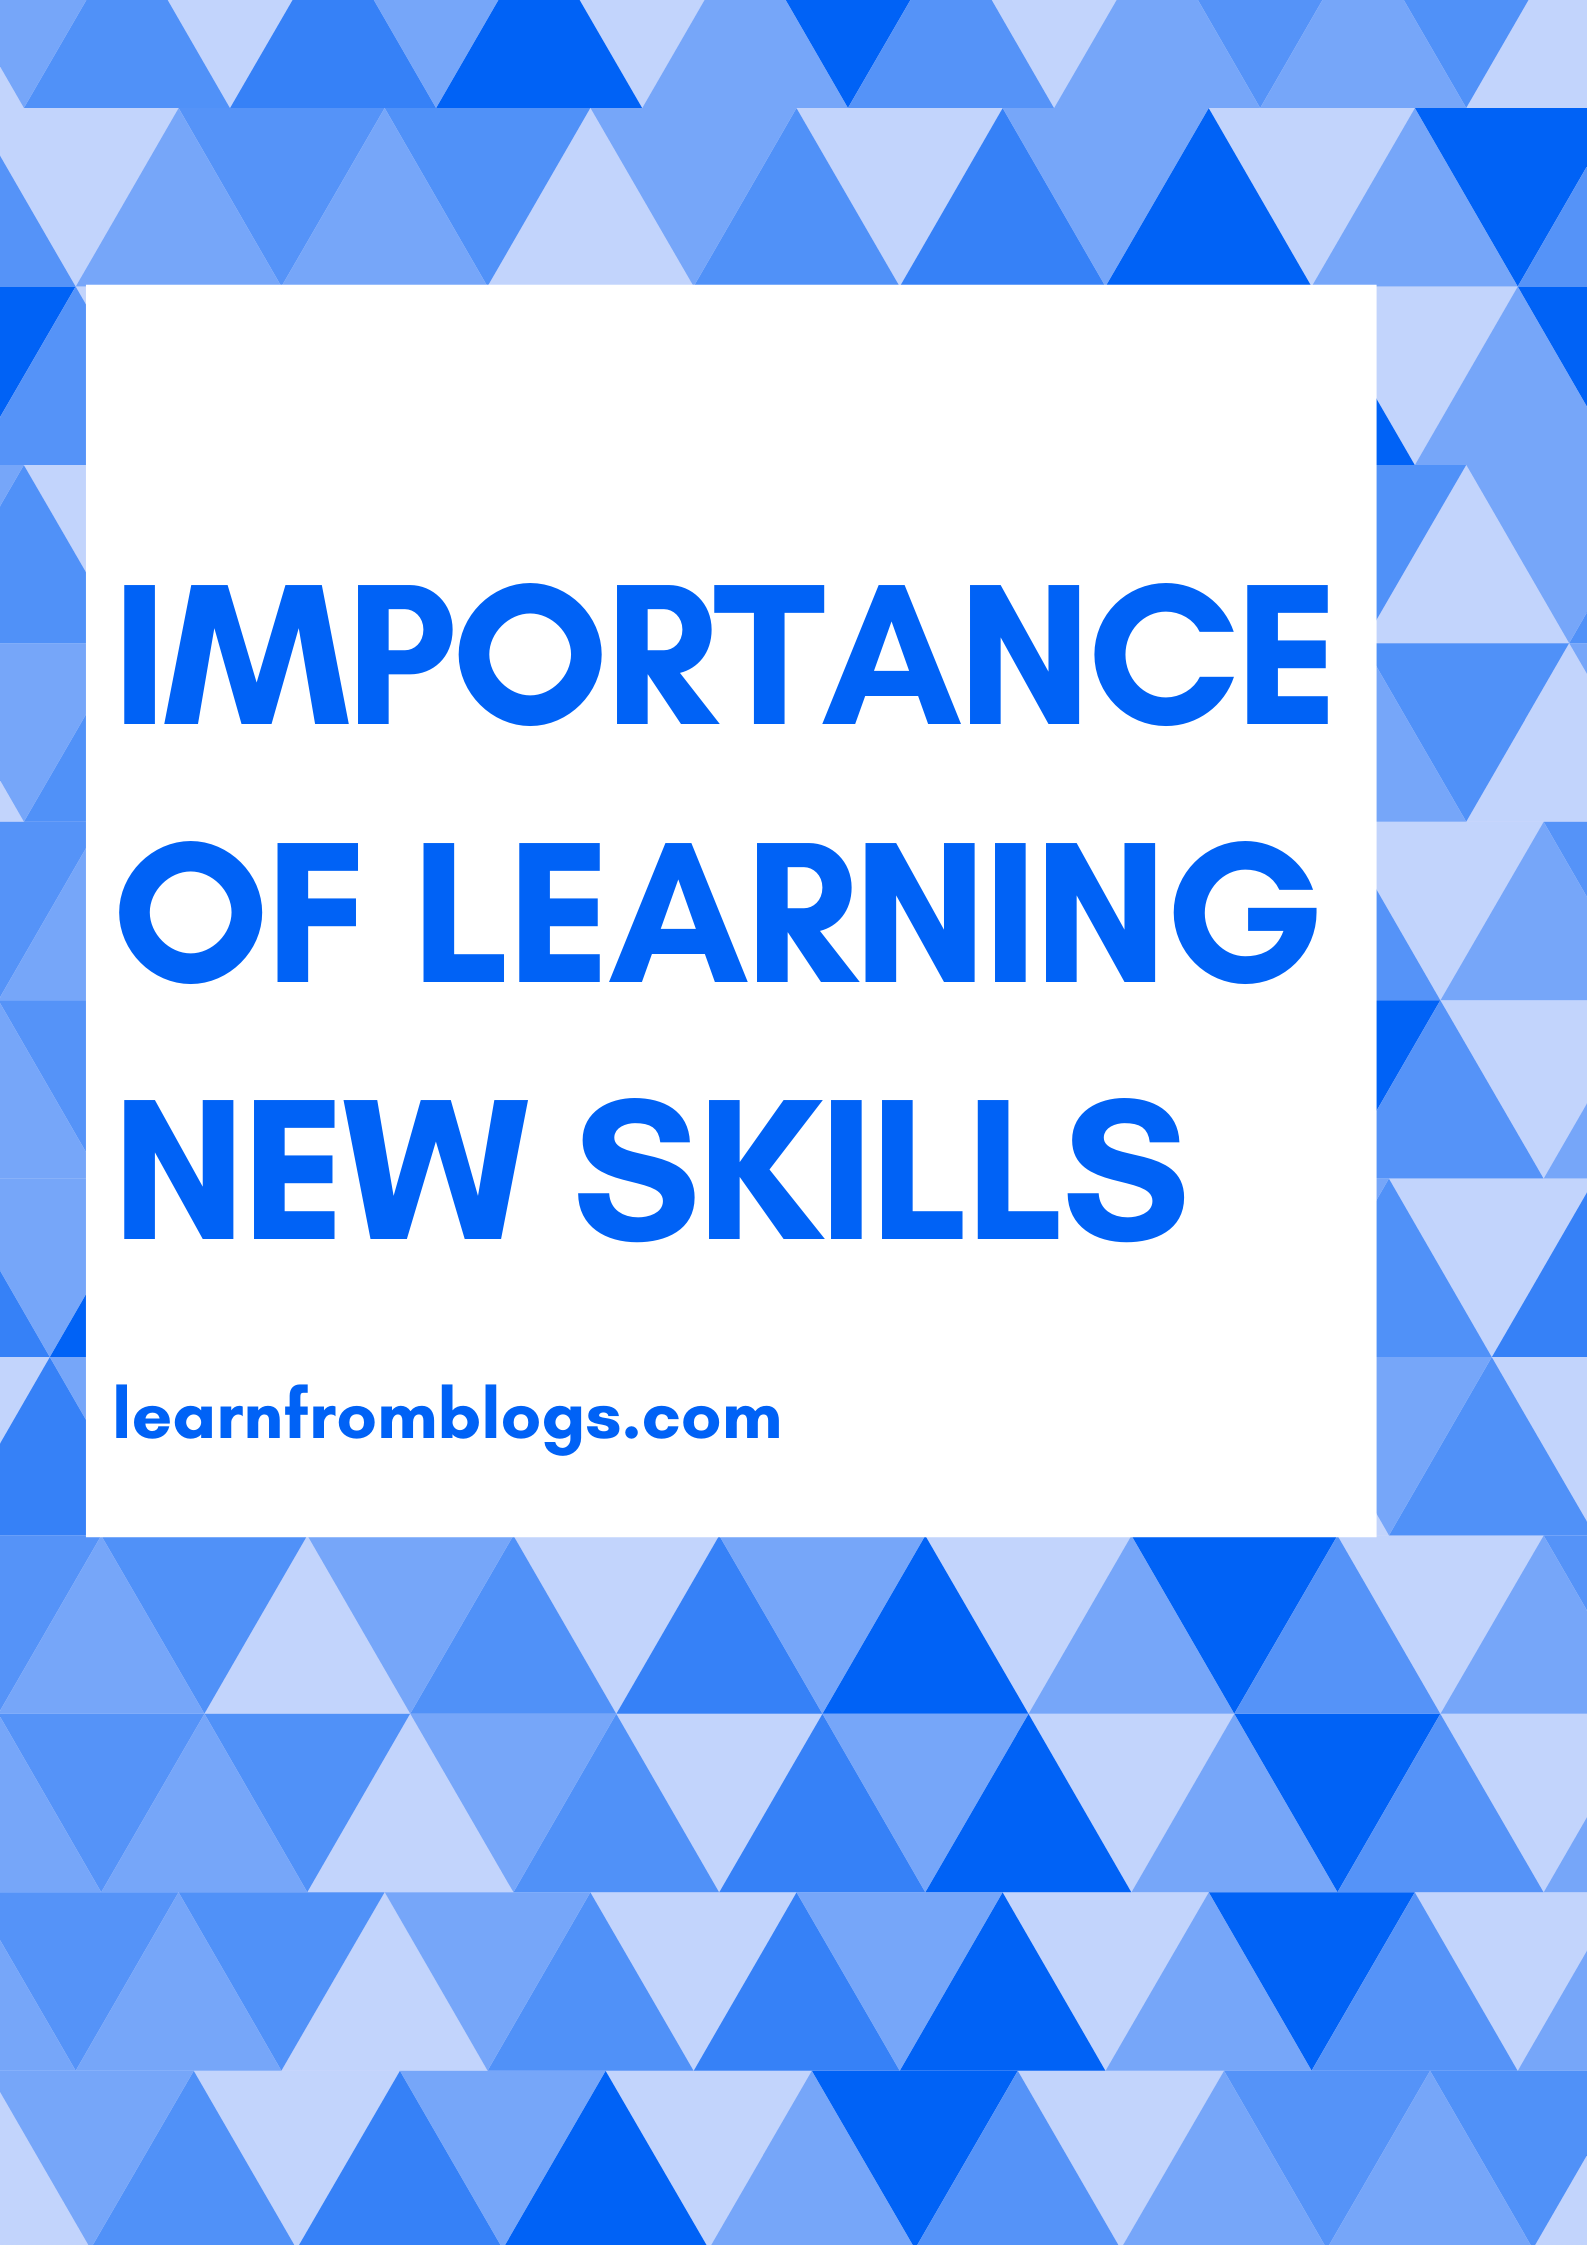 Importance Of Learning New Skills.png